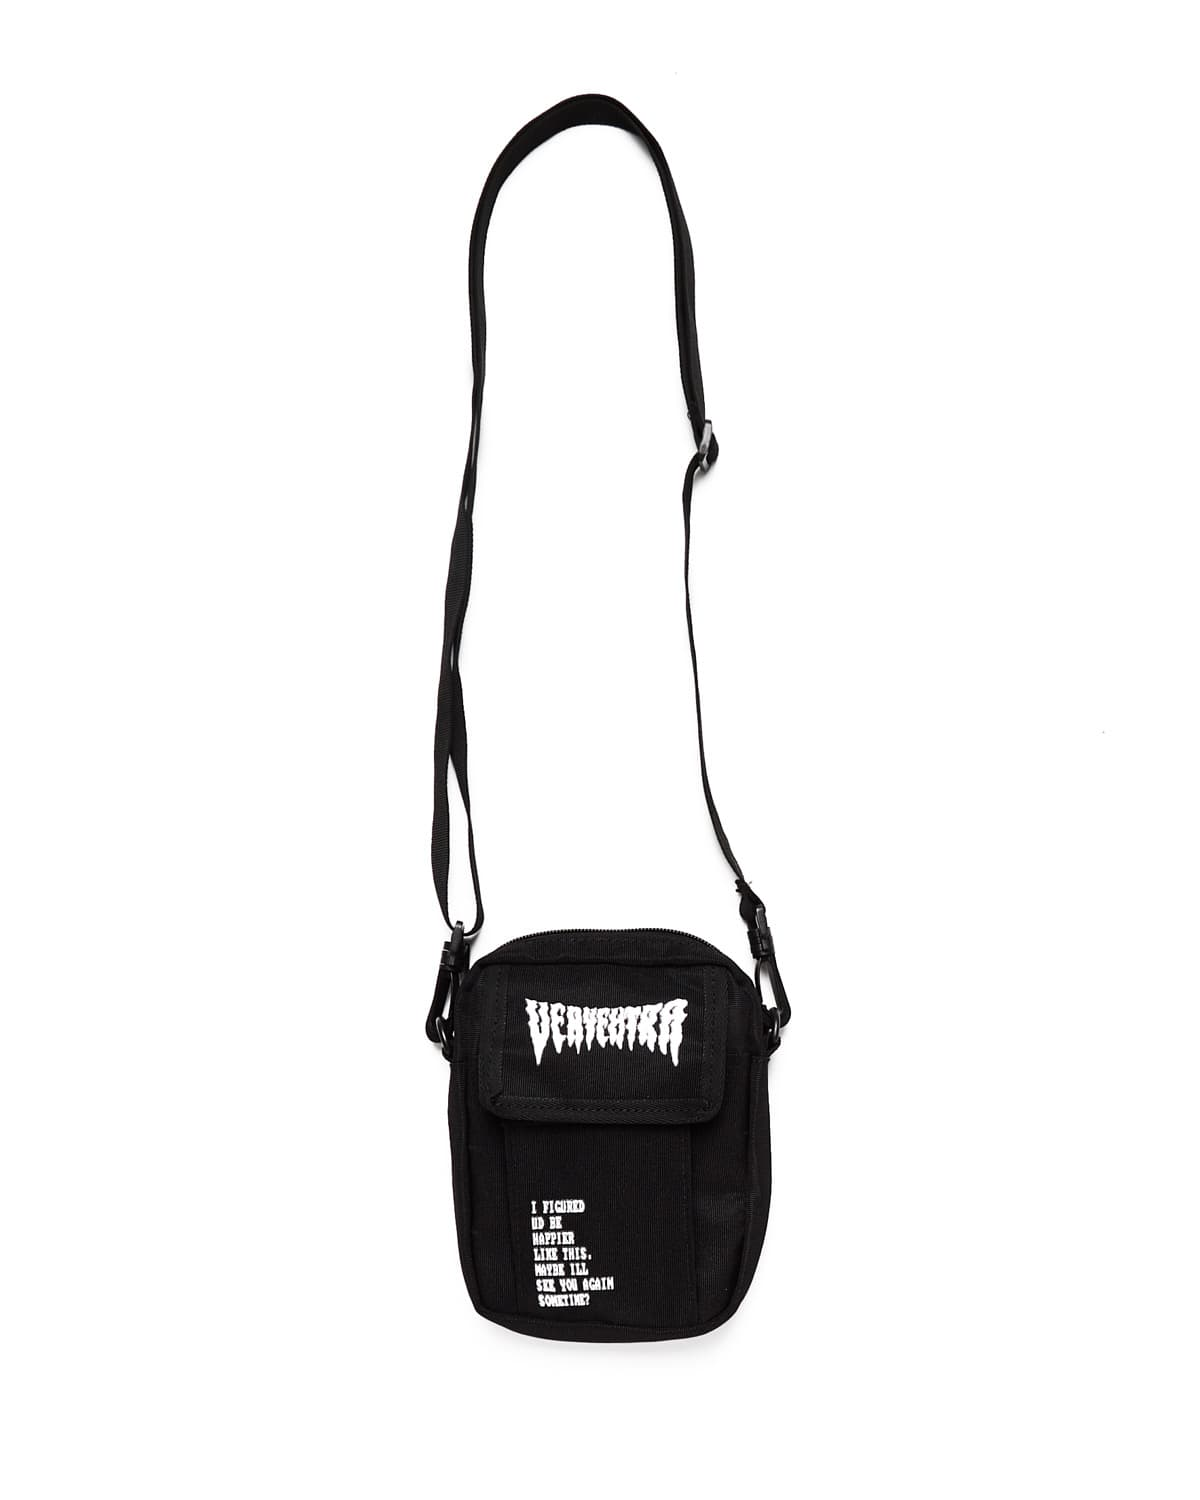 'Very Extra' Shoulder Bag